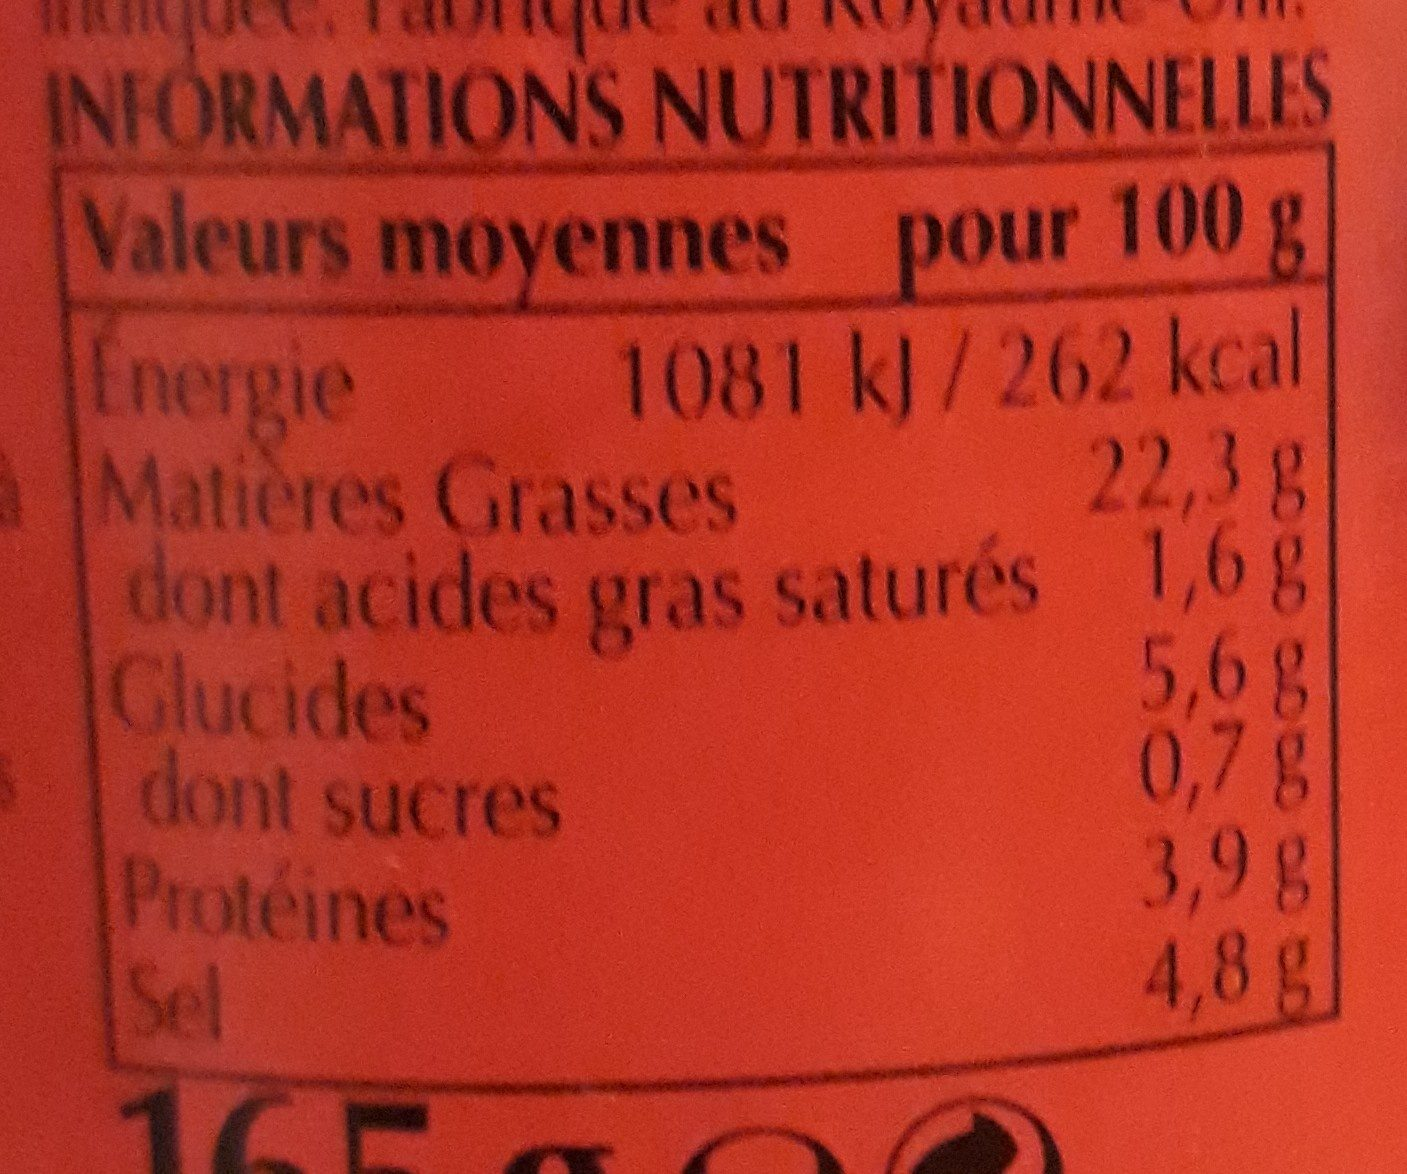 Pâte de curry Curry Doux - Nutrition facts